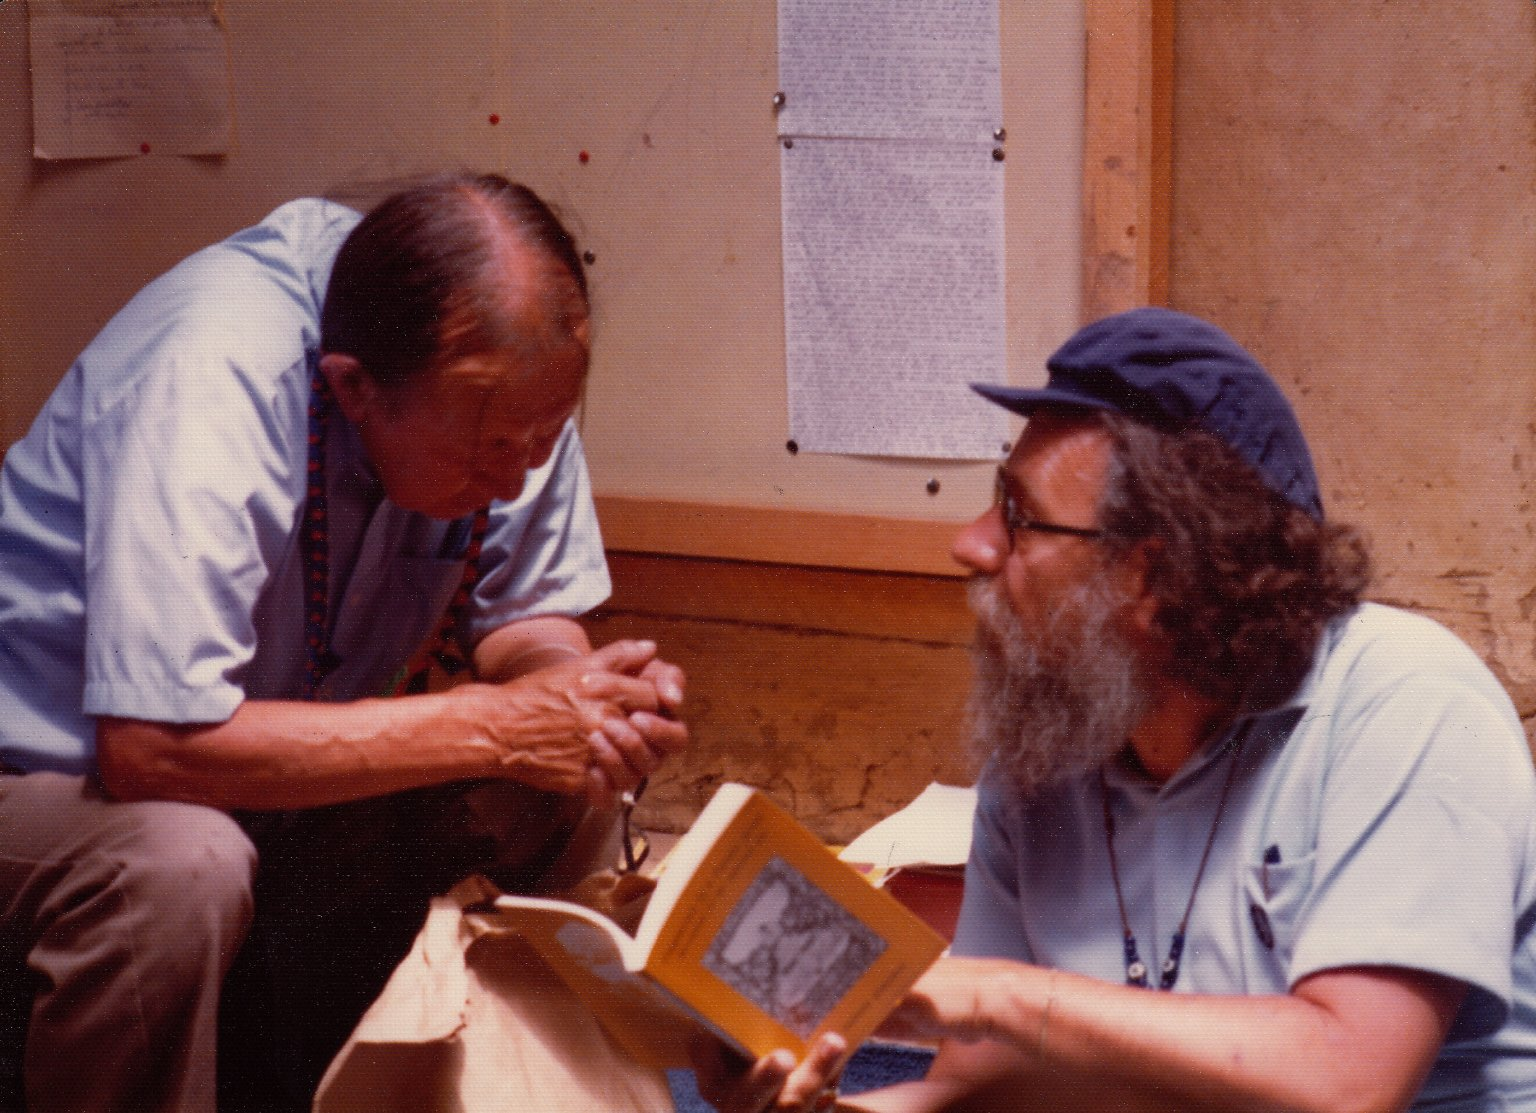 Rabbi Zalman Schachter-Shalomi reading a passage in his book, Fragments of a Future Scroll, to a Native American Elder.